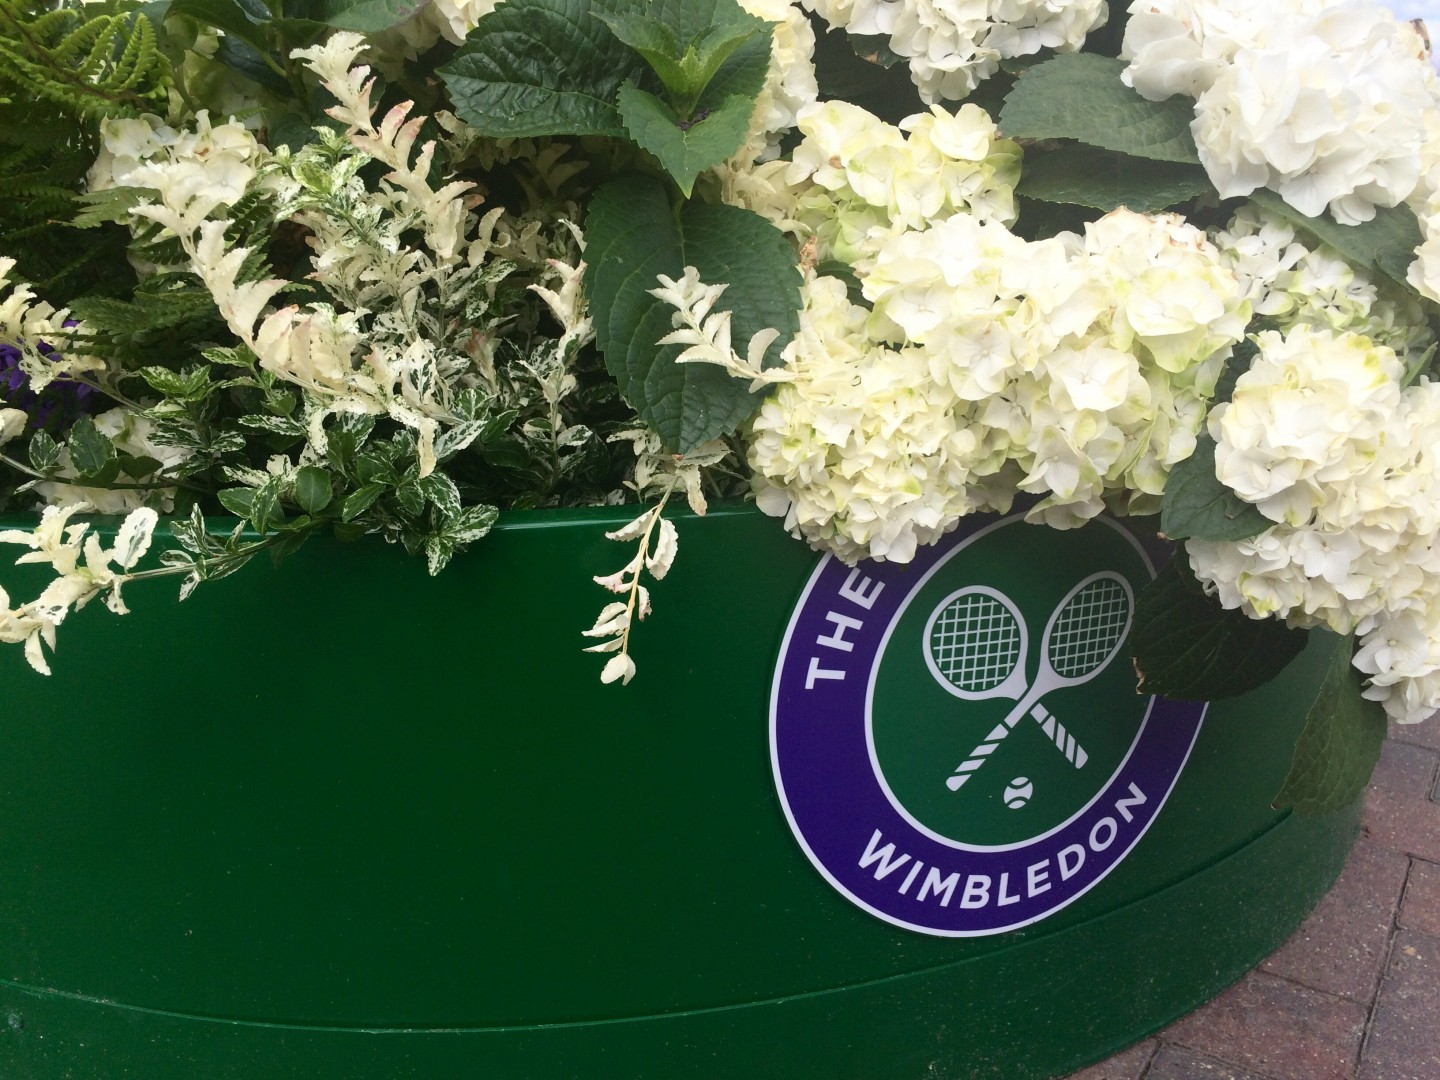 My Day at Wimbledon (and How You Can Be There Next Year)